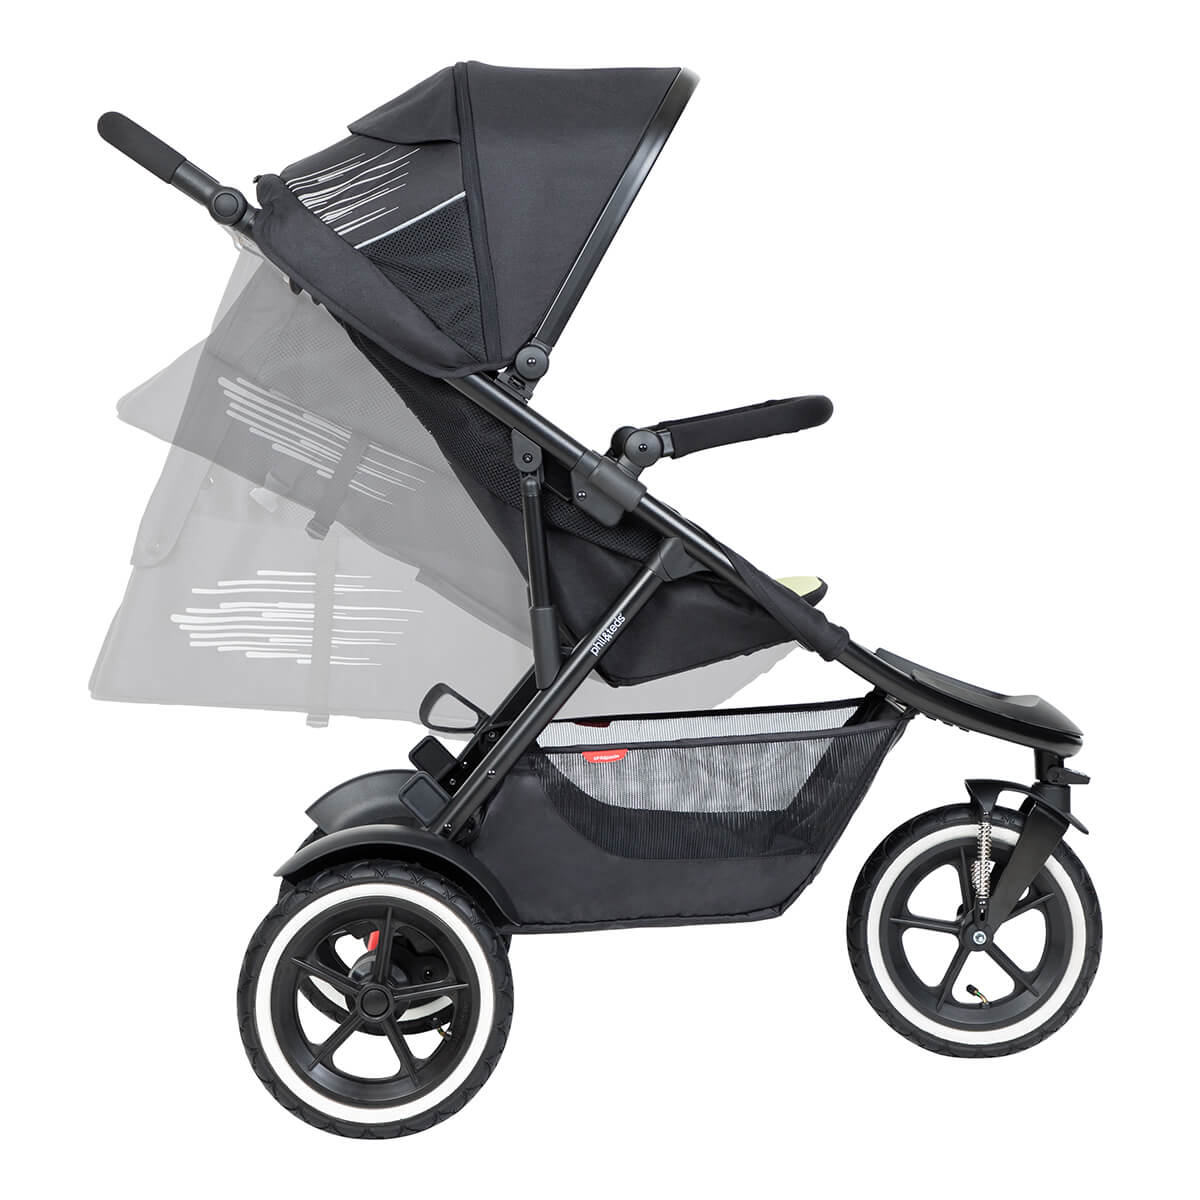 https://cdn.accentuate.io/4394651156568/19272668184664/philteds-sport-buggy-can-recline-in-multiple-angles-including-full-recline-for-newborn-baby-v1626484292055.jpg?1200x1200